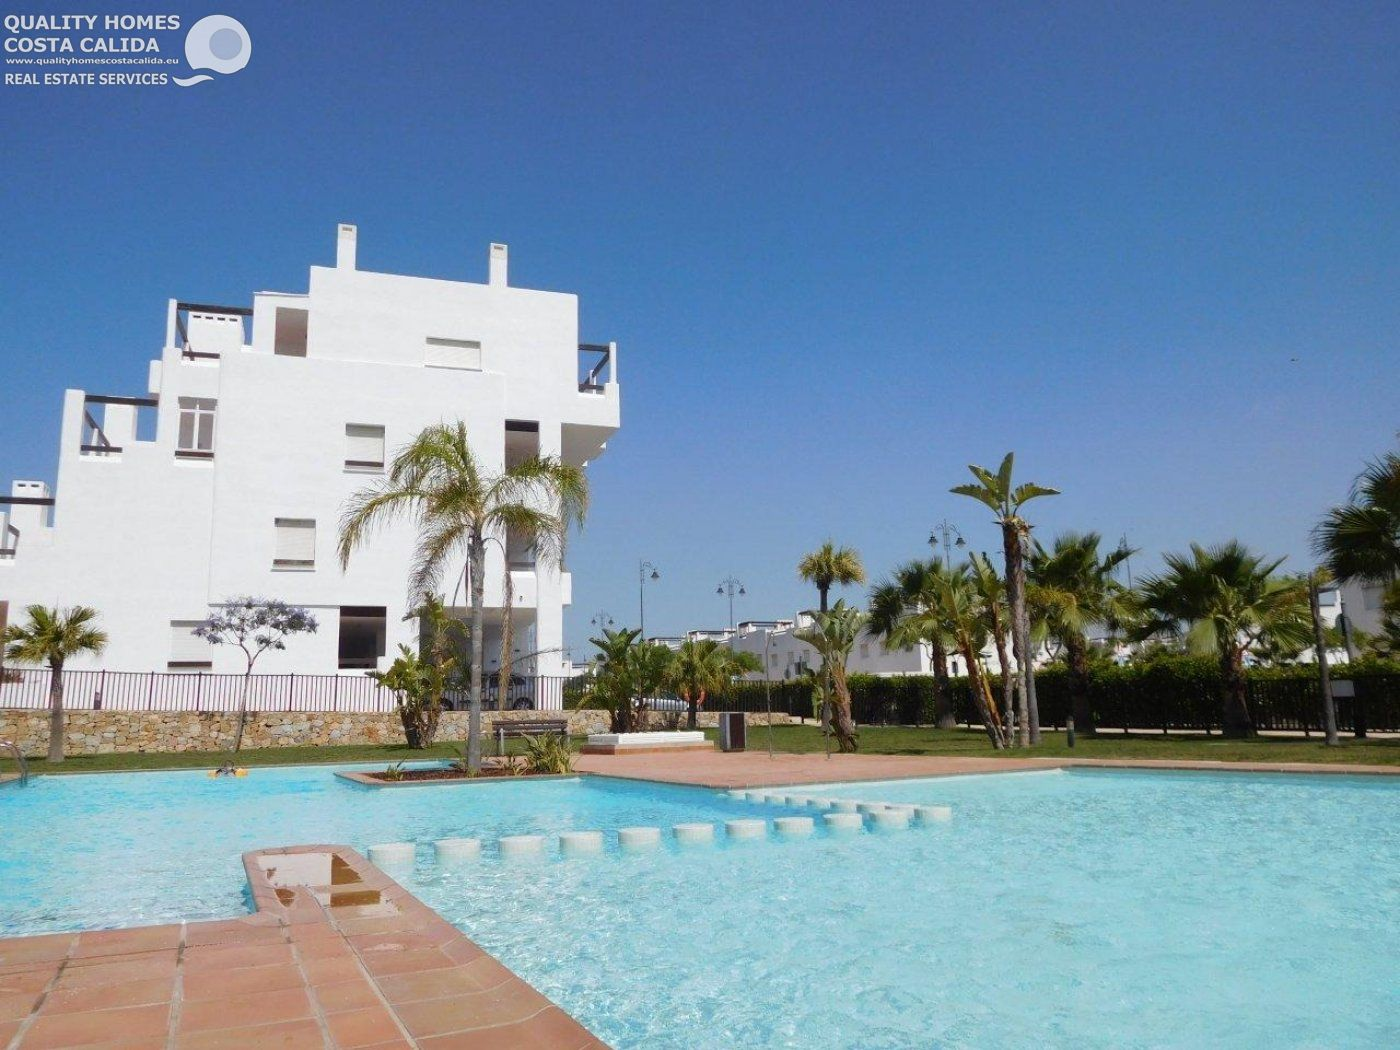 Gallery Image 33 of Spectacular penthouse located at the best golf course of the region at Condado de Alhama Golf Resort